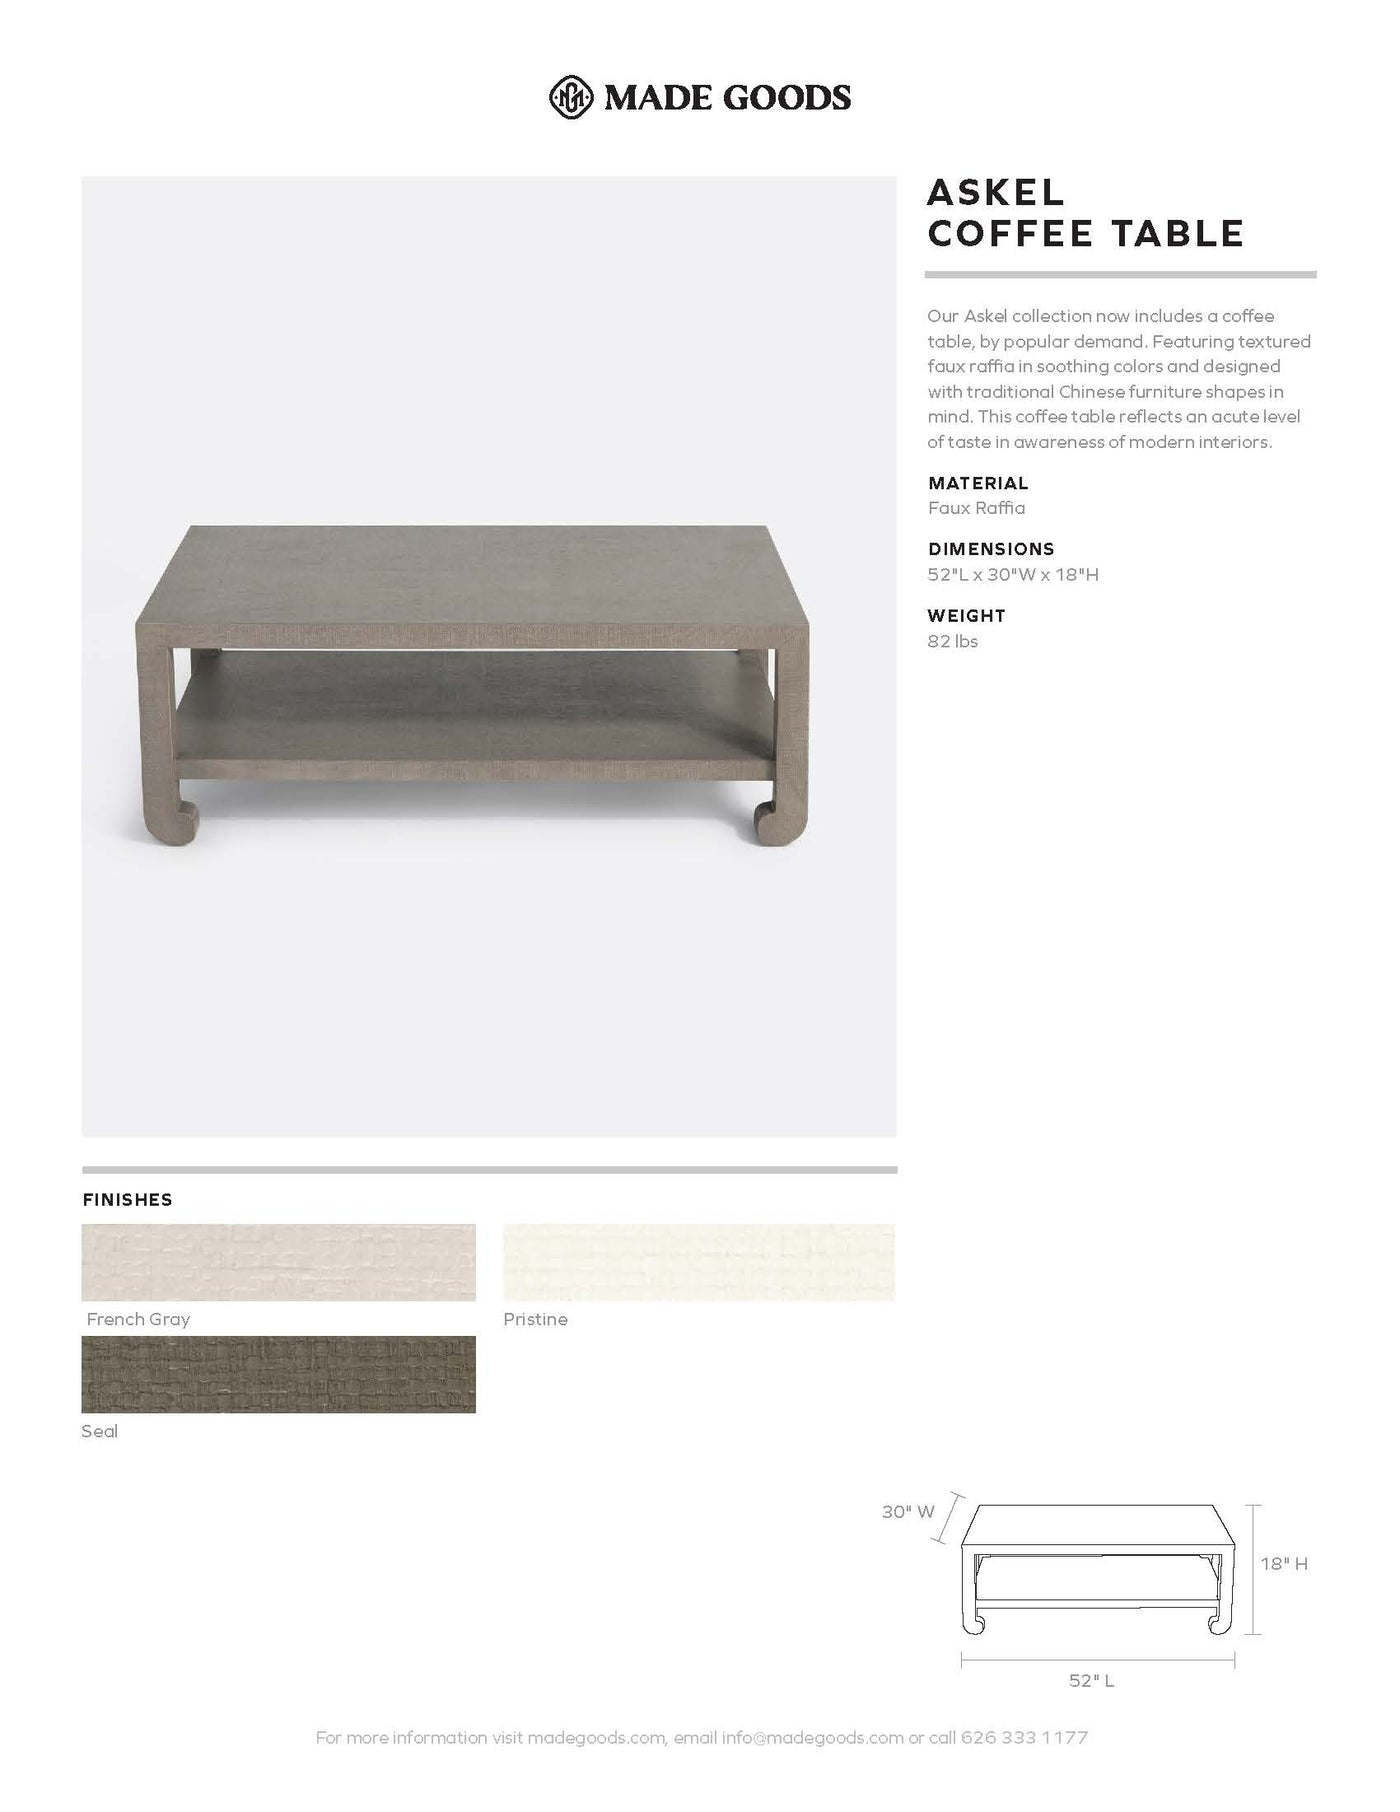 made goods askel coffee table tearsheet